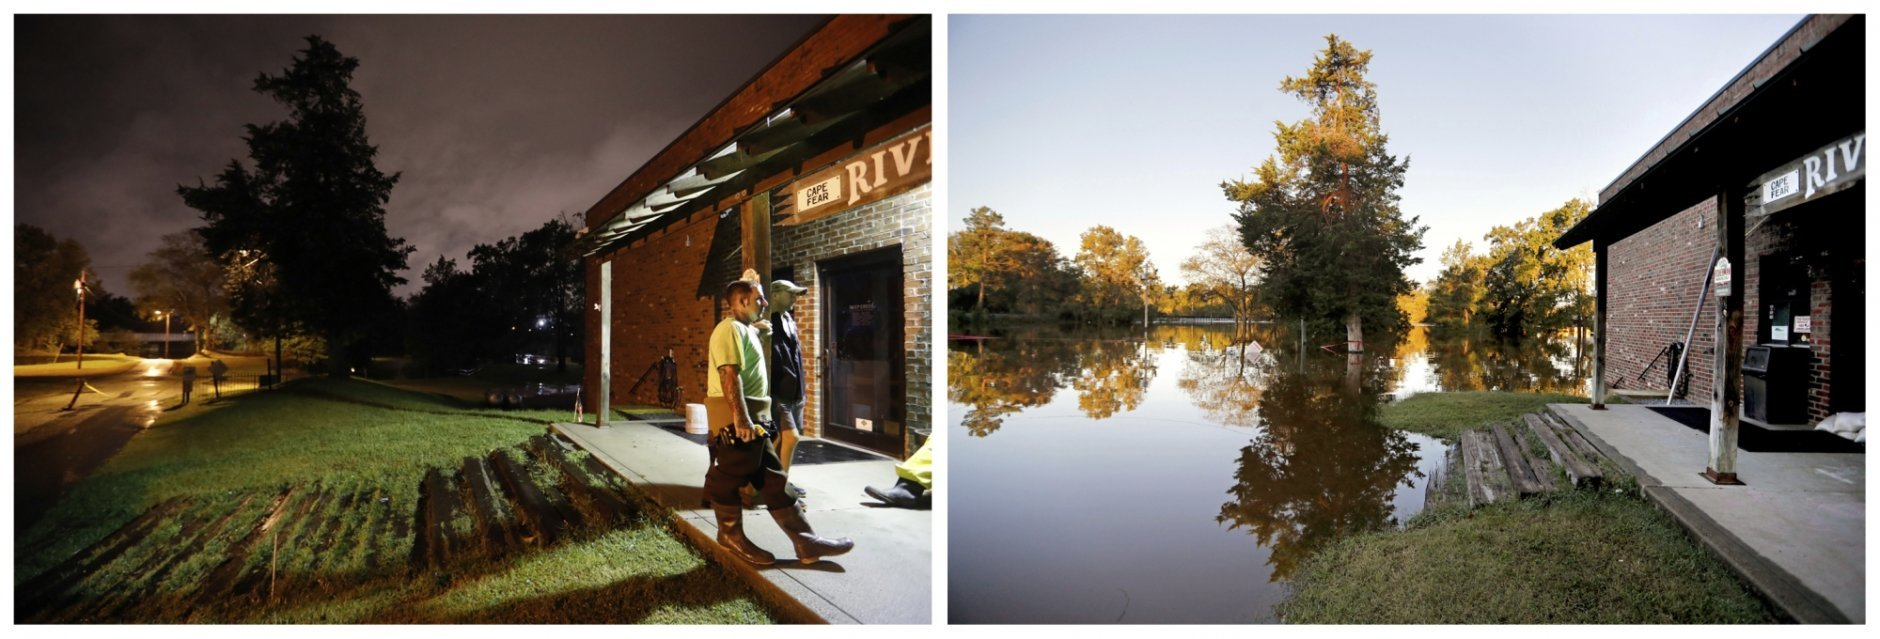 This combination of photos shows Cape Fear River in the background behind a bait and tackle shop on Sept. 16, 2018, left, and on Sept. 19, 2018, in the aftermath of Hurricane Florence on Fayetteville, N.C. (AP Photo/David Goldman)